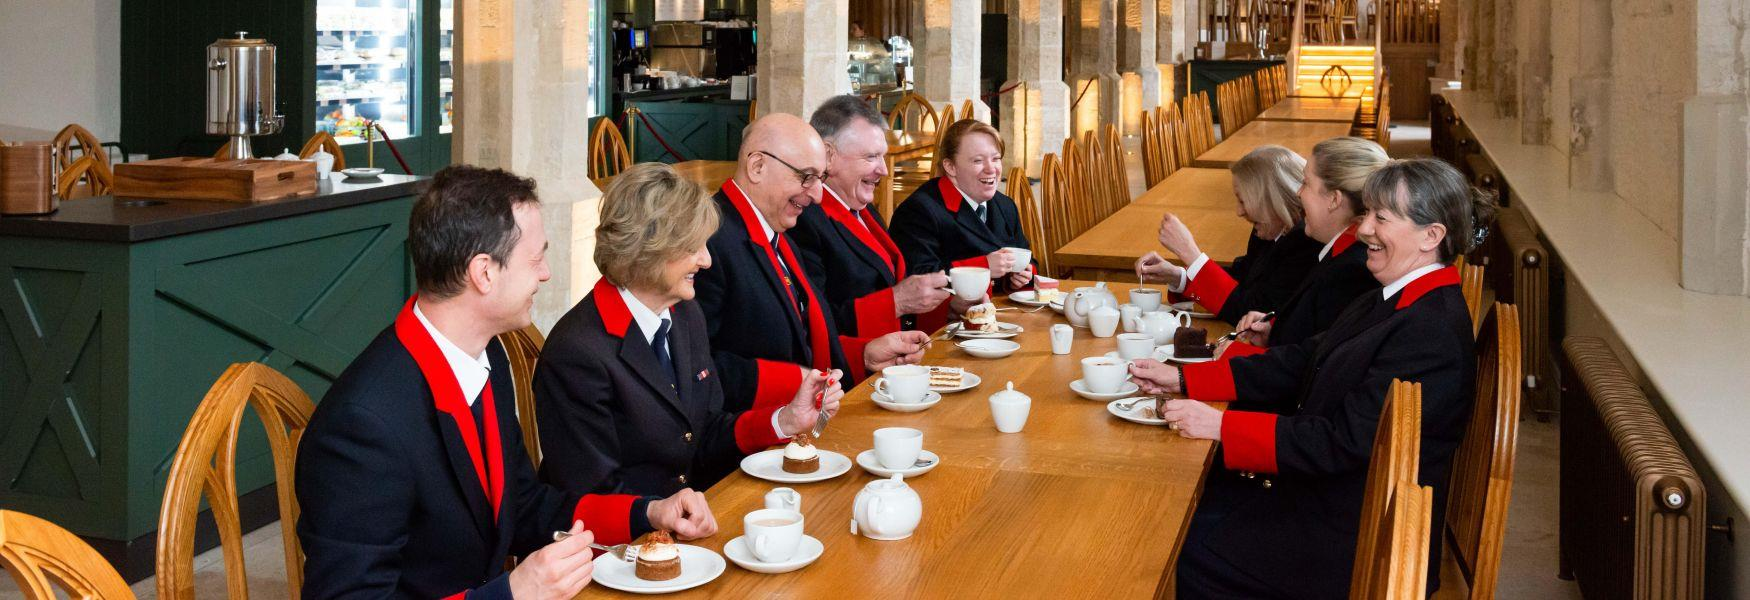 Royal Collection Trust Wardens, who welcome visitors to Windsor Castle, sampling the menu in the new Undercroft Café before it opened to the public.